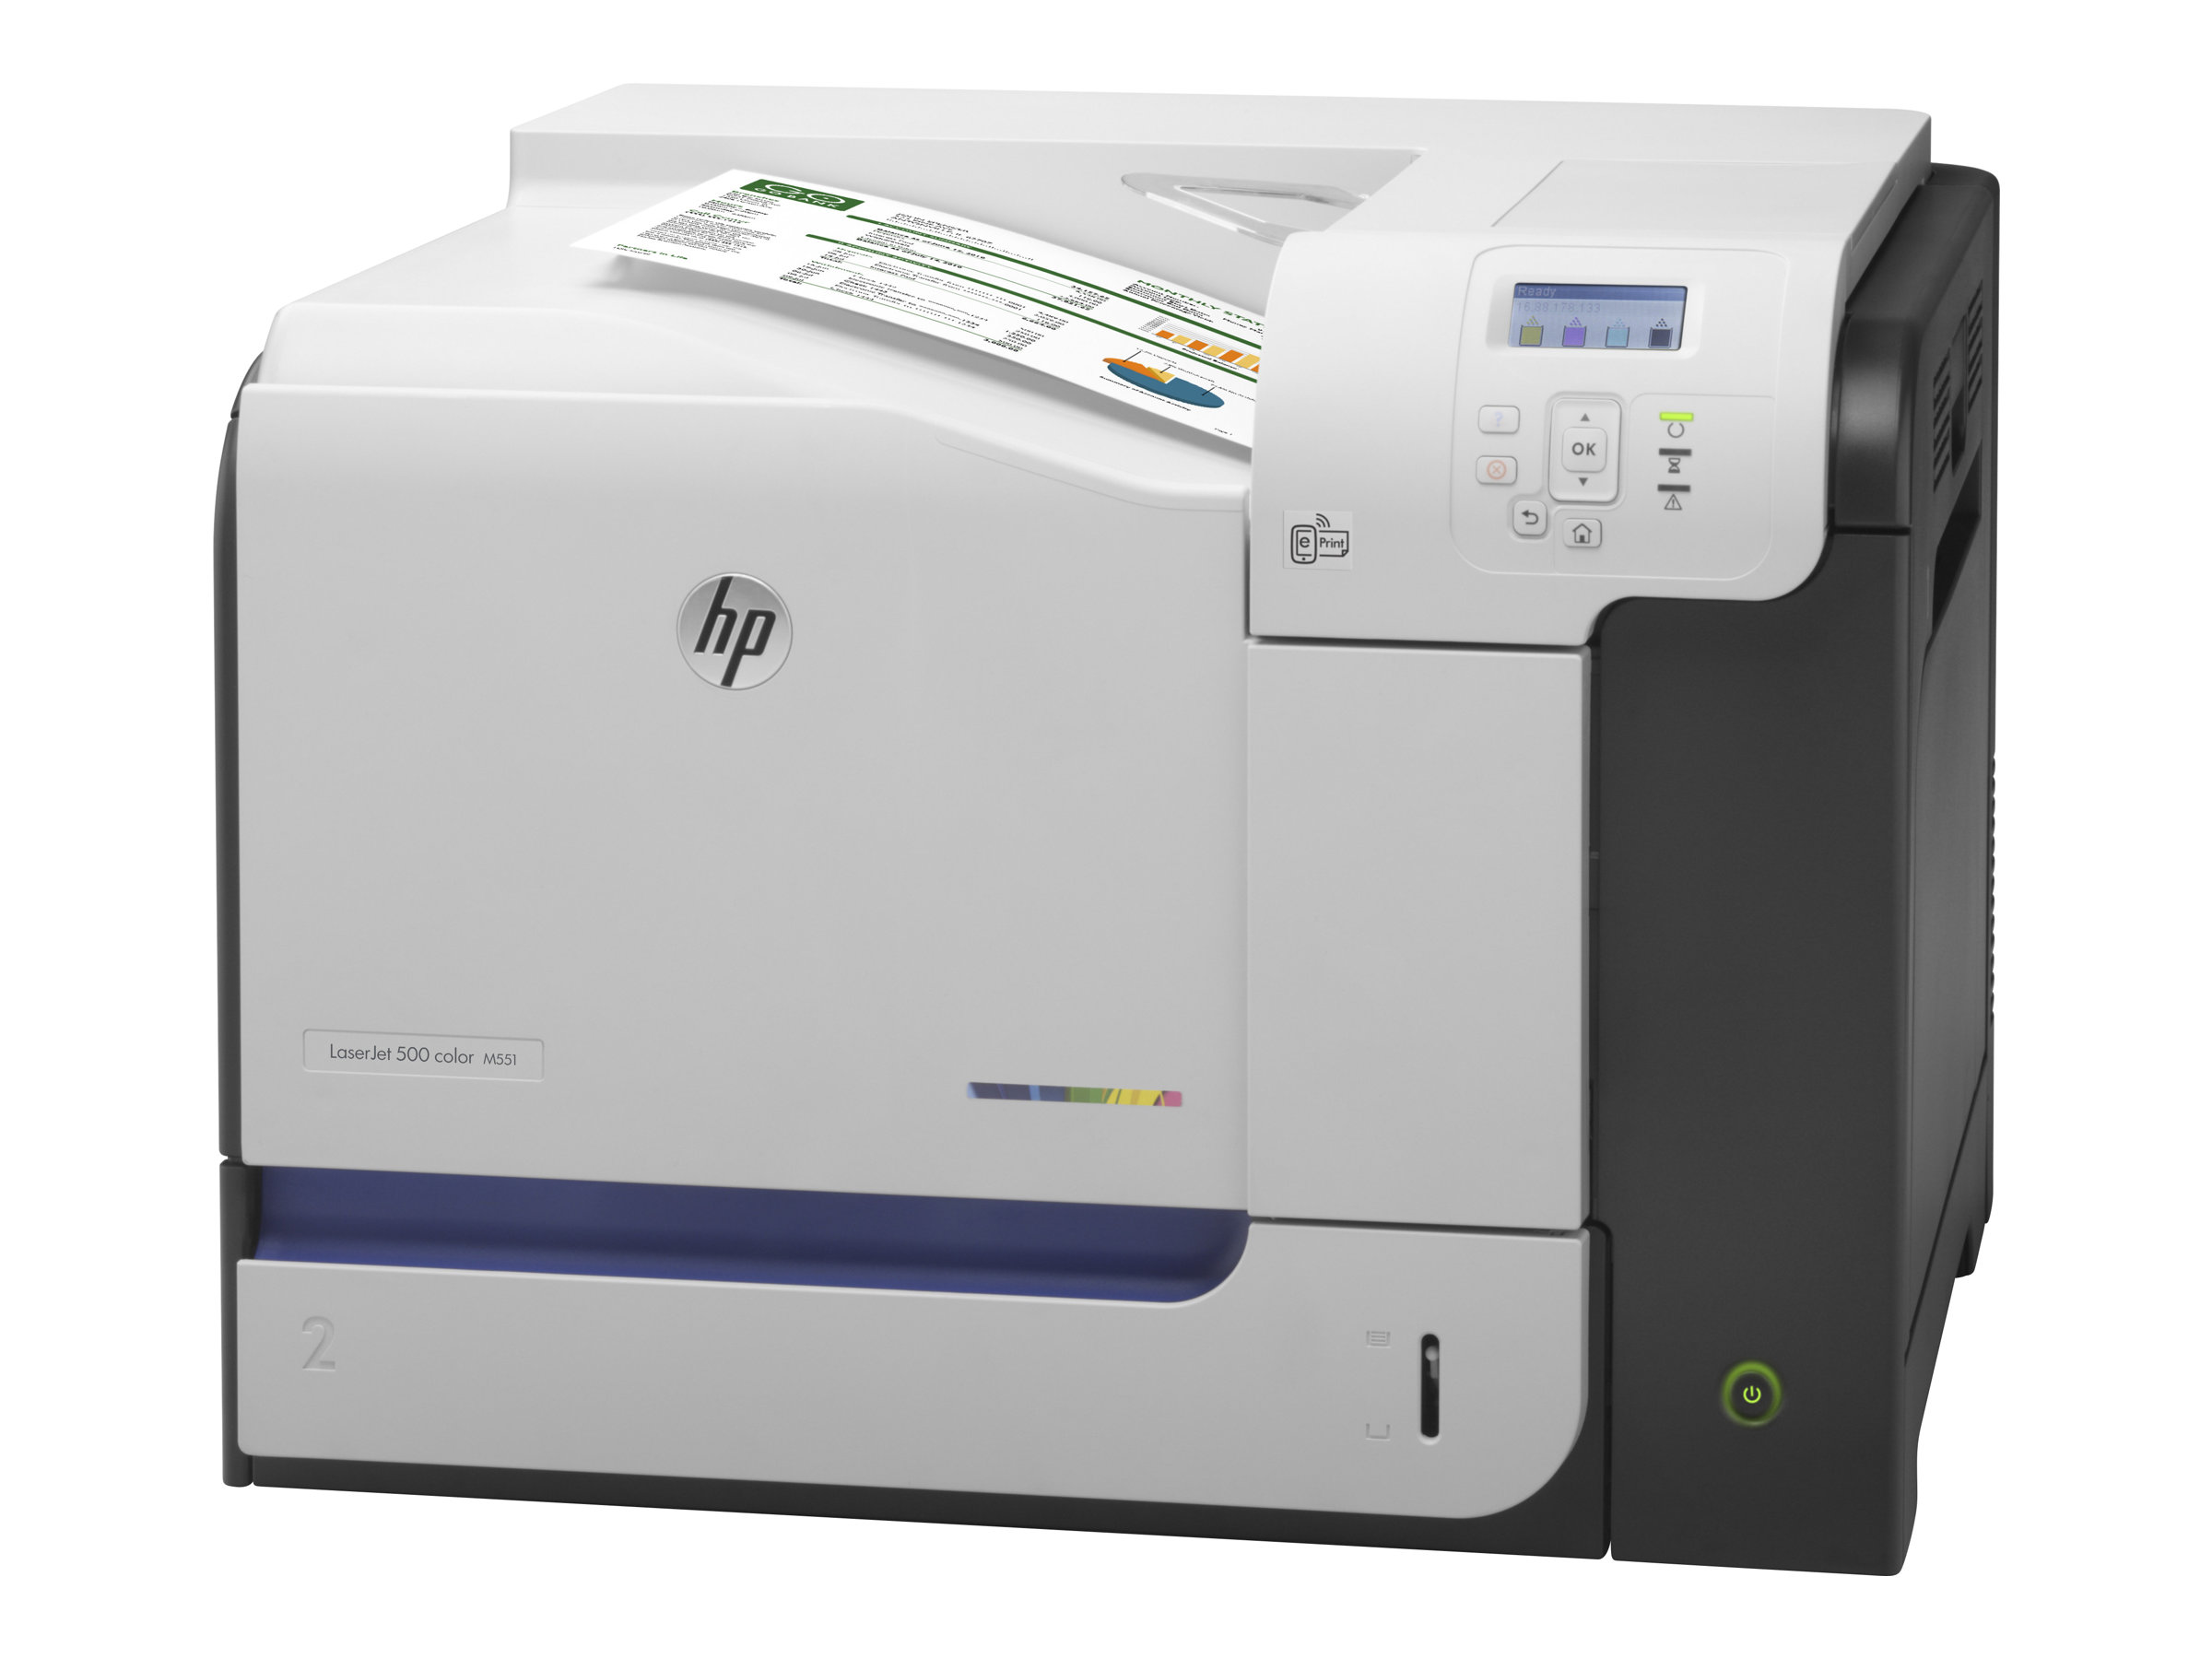 Cartouches laser compatibles avec l'imprimante HP LASERJET ENTERPRISE 500 COLOR M551 N